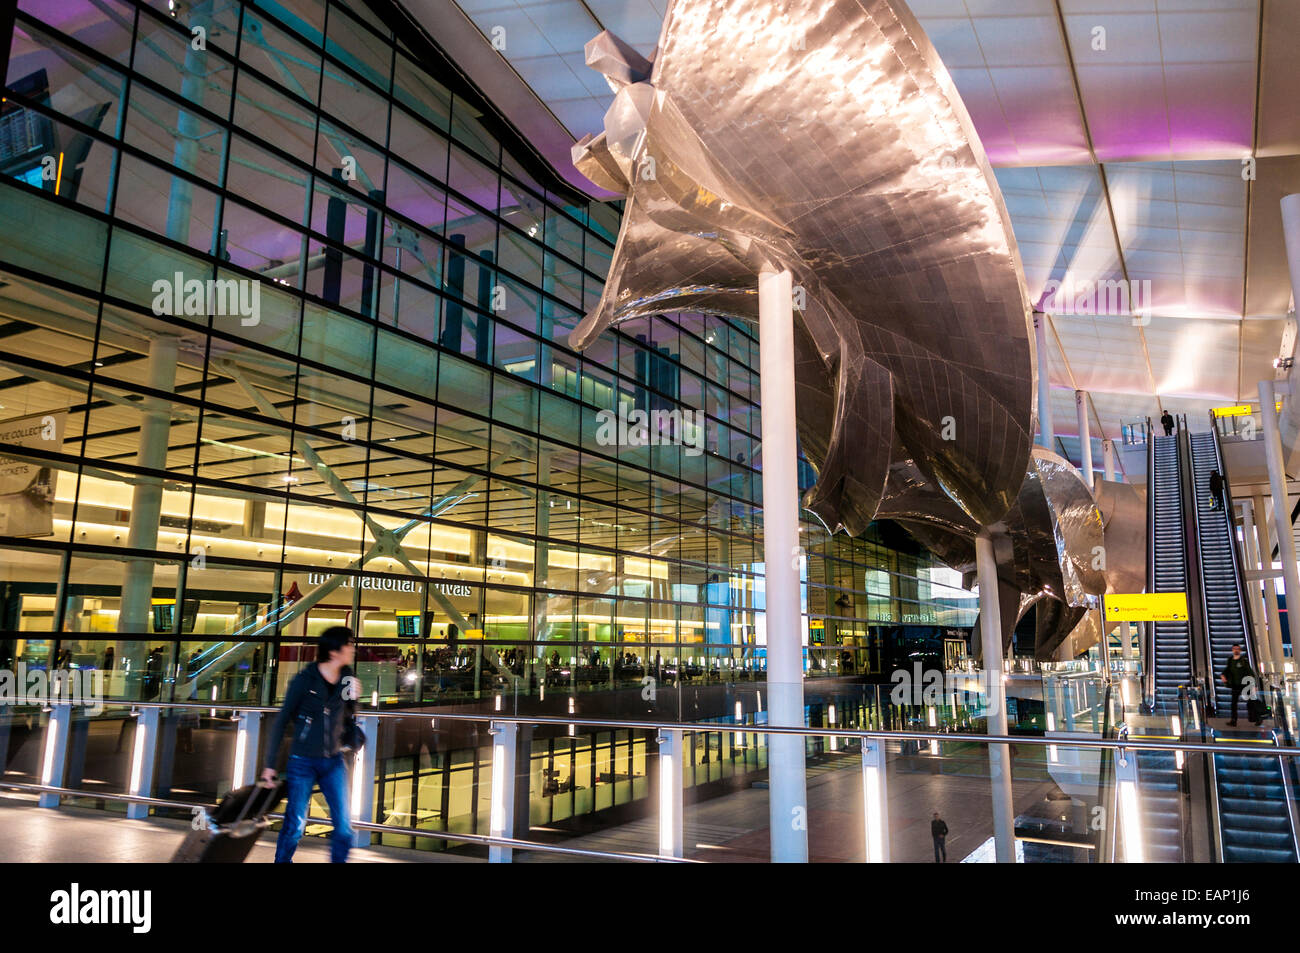 Terminal Two International Arrivals Departures hall at new terminal building at London Heathrow Airport - Stock Image